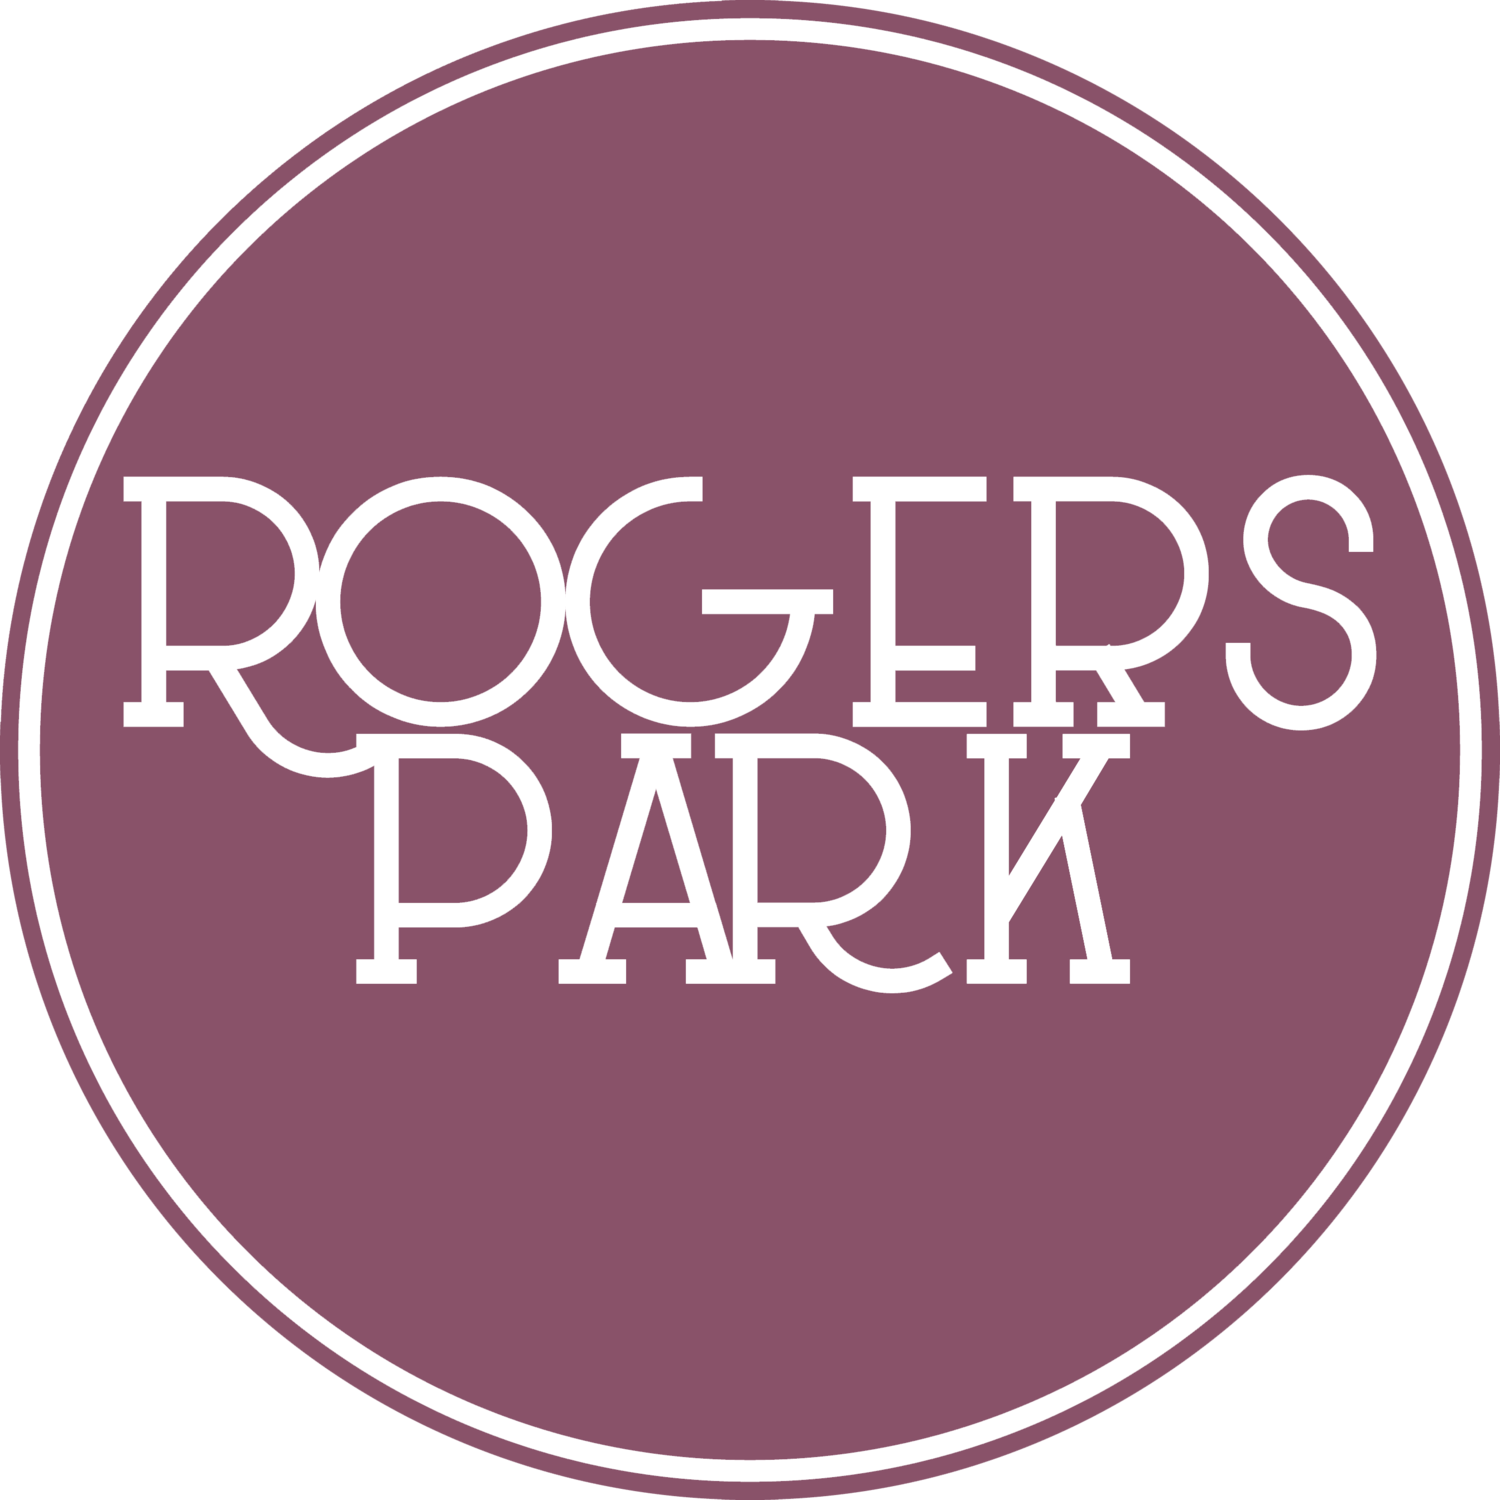 Rogers Park Band